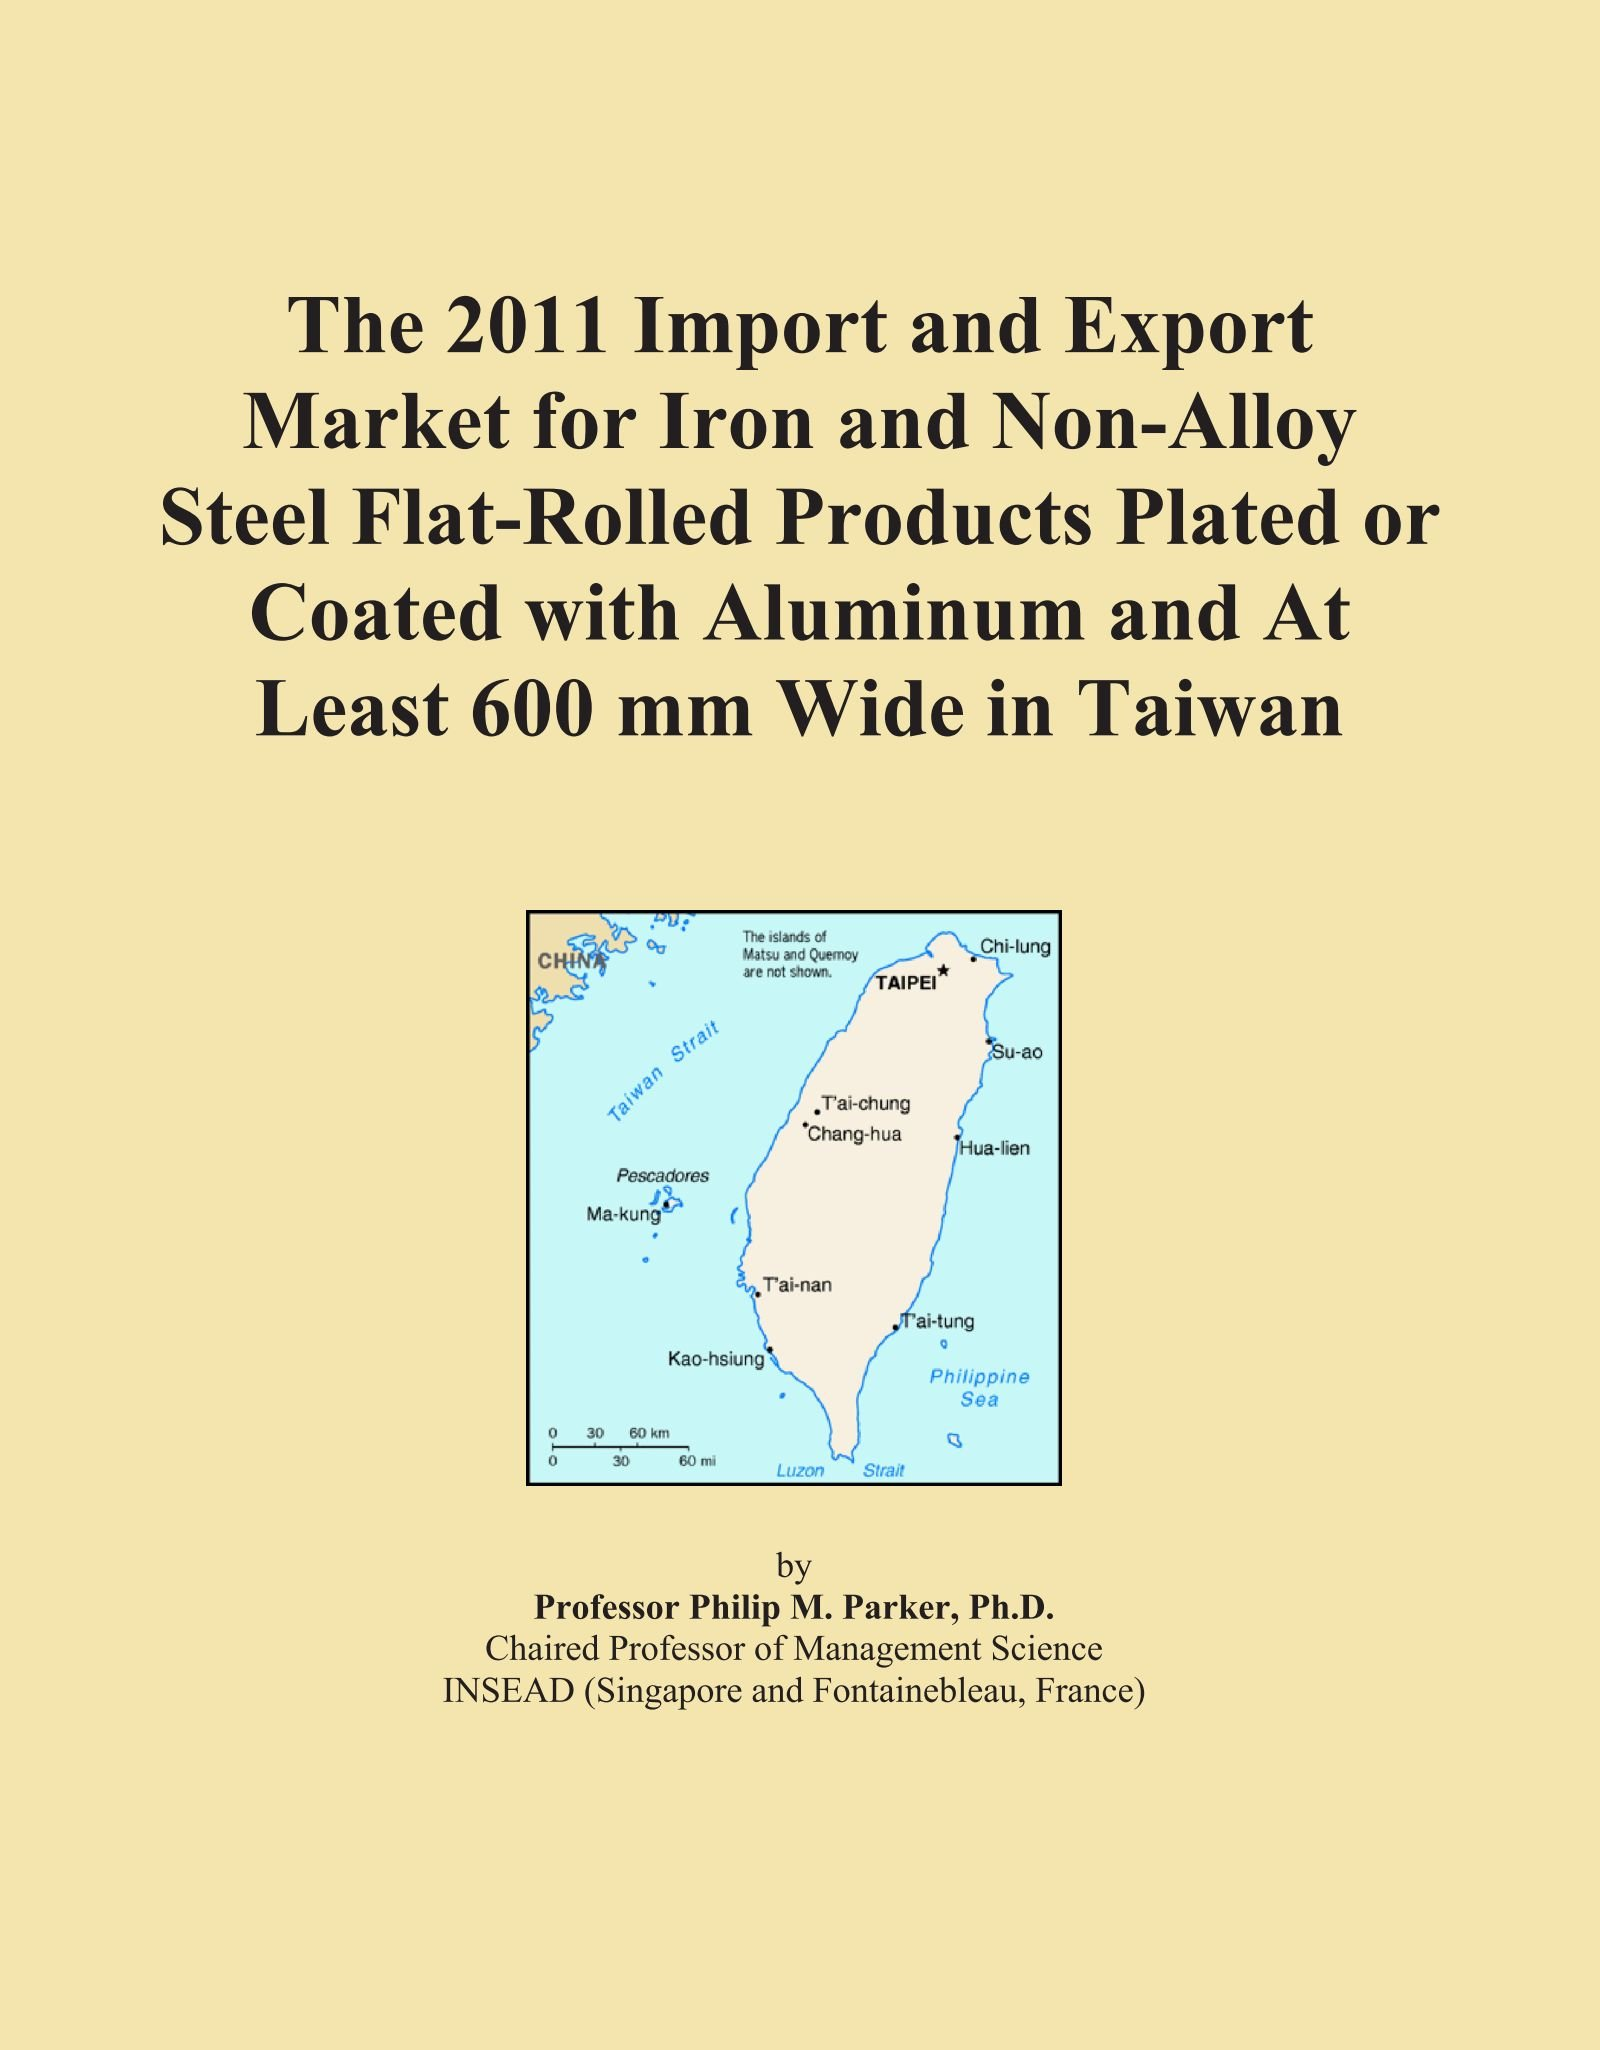 Download The 2011 Import and Export Market for Iron and Non-Alloy Steel Flat-Rolled Products Plated or Coated with Aluminum and At Least 600 mm Wide in Taiwan PDF